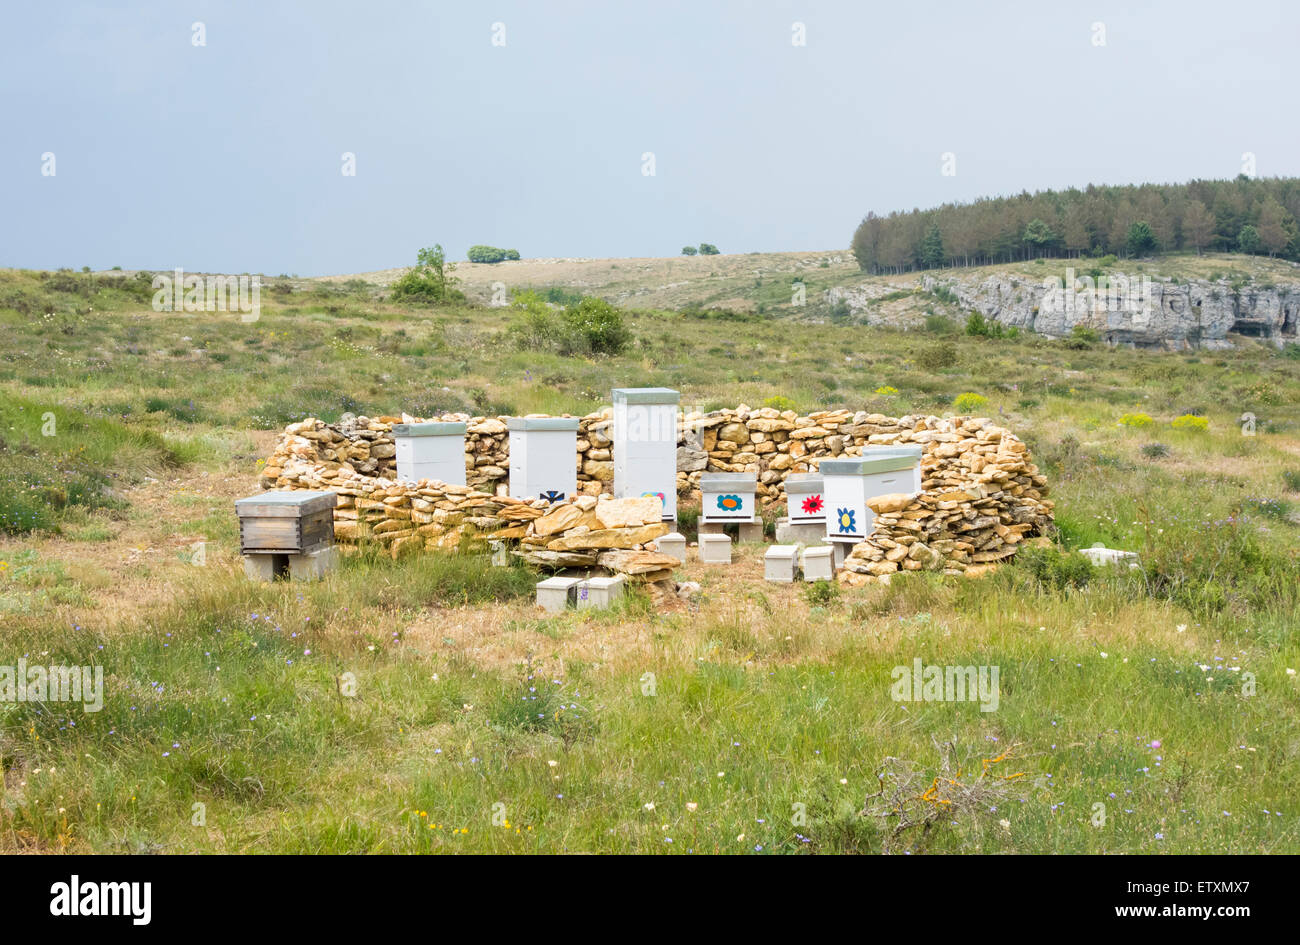 Bee hives in field in Spain - Stock Image